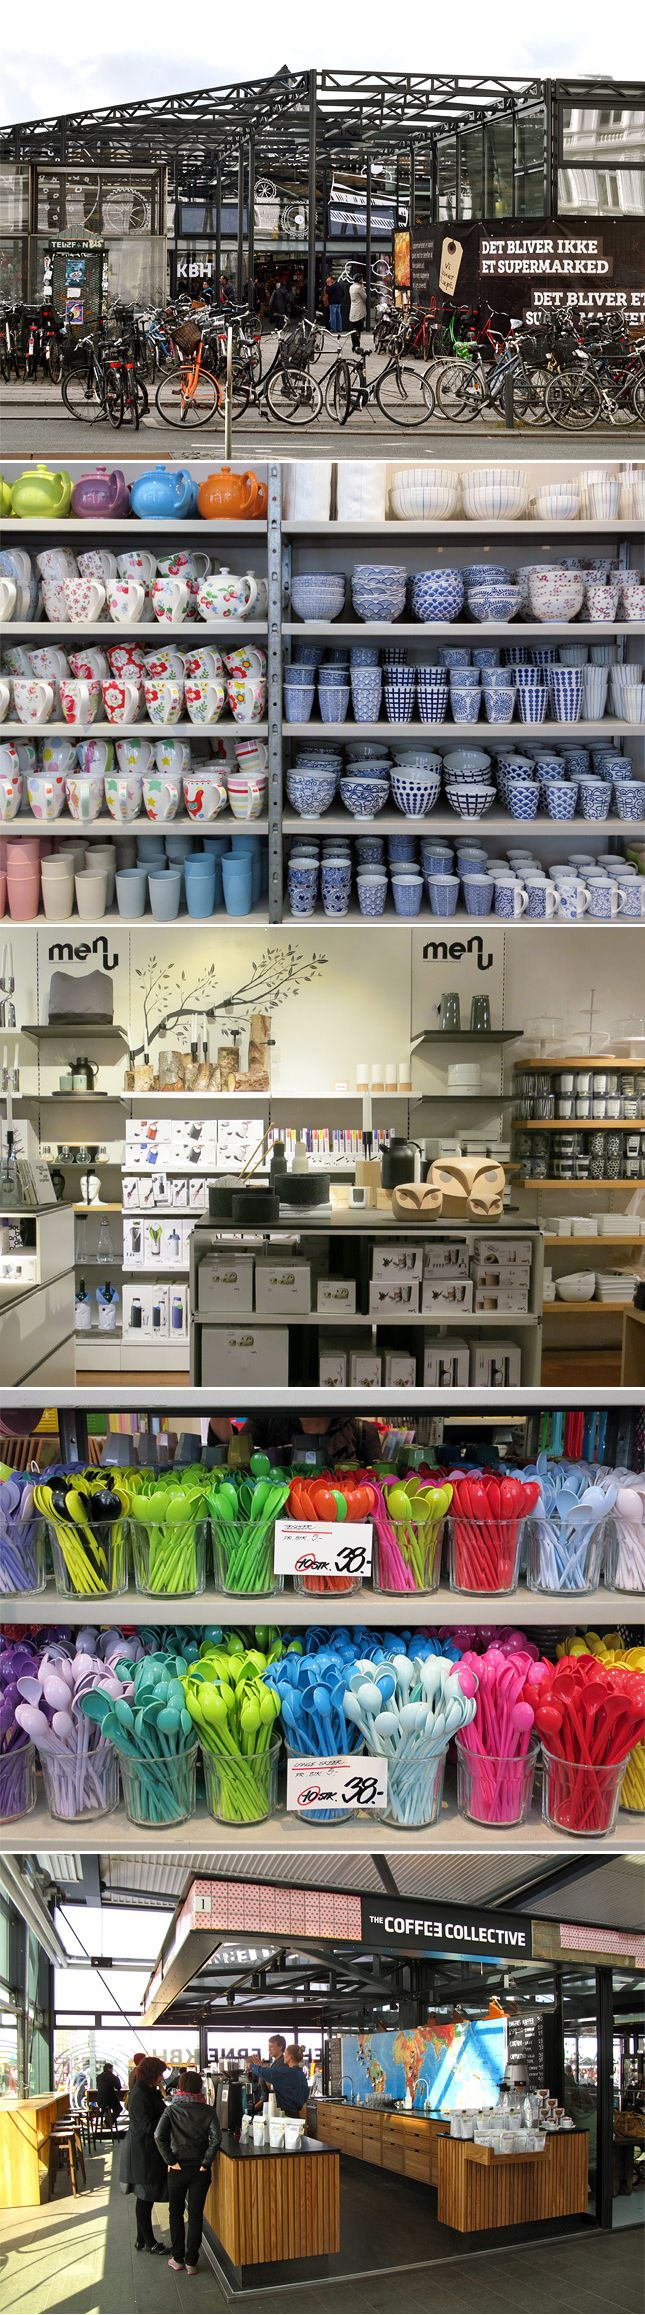 Top Five Stores for Food, Craft, and Design Lovers in Copenhagen